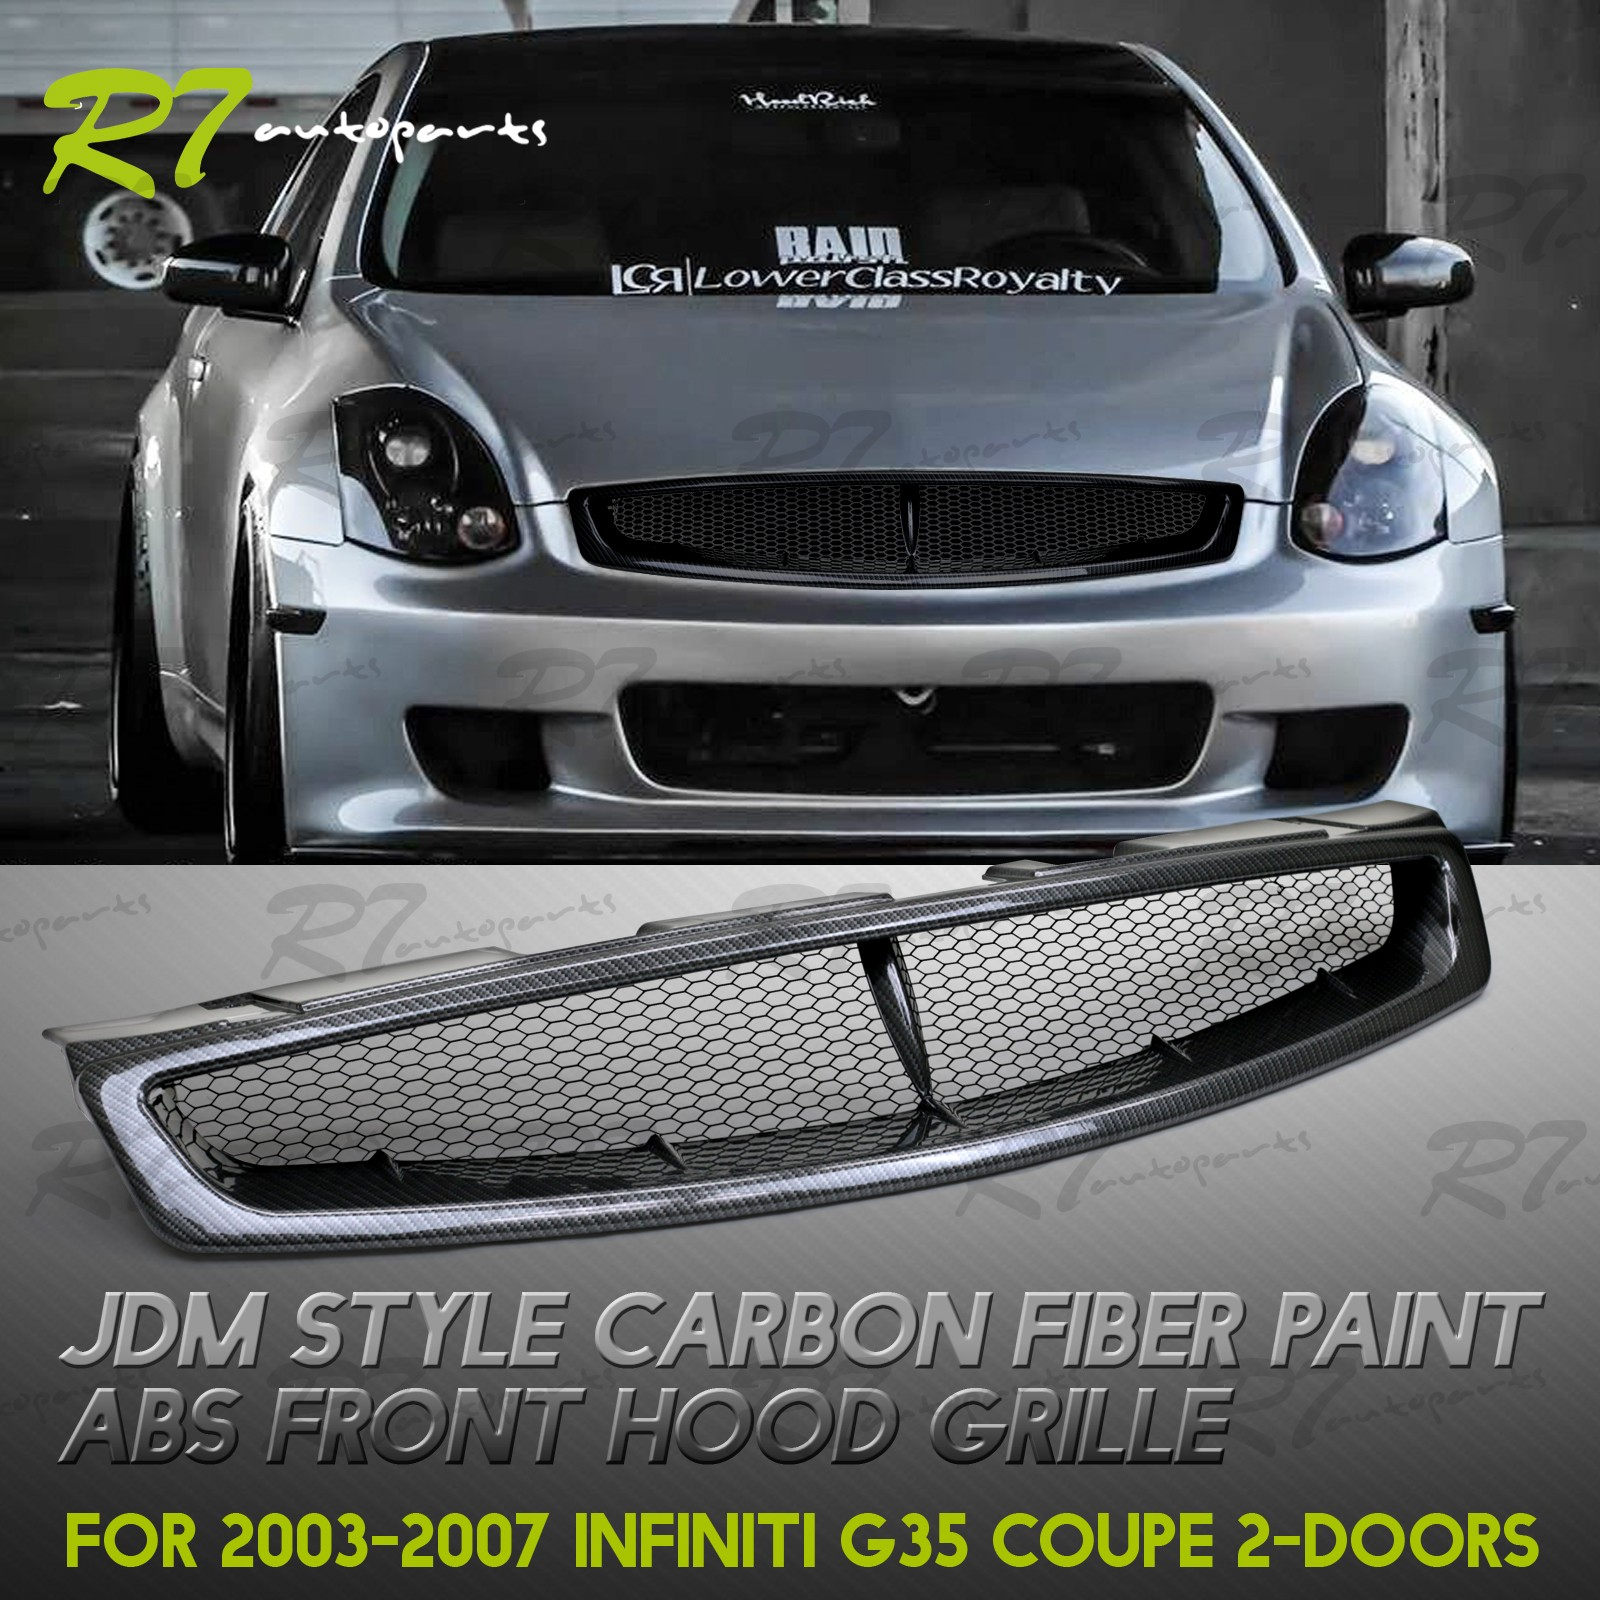 INSTANTLY IMPROVE THE FRONT LOOK OF YOUR CAR!